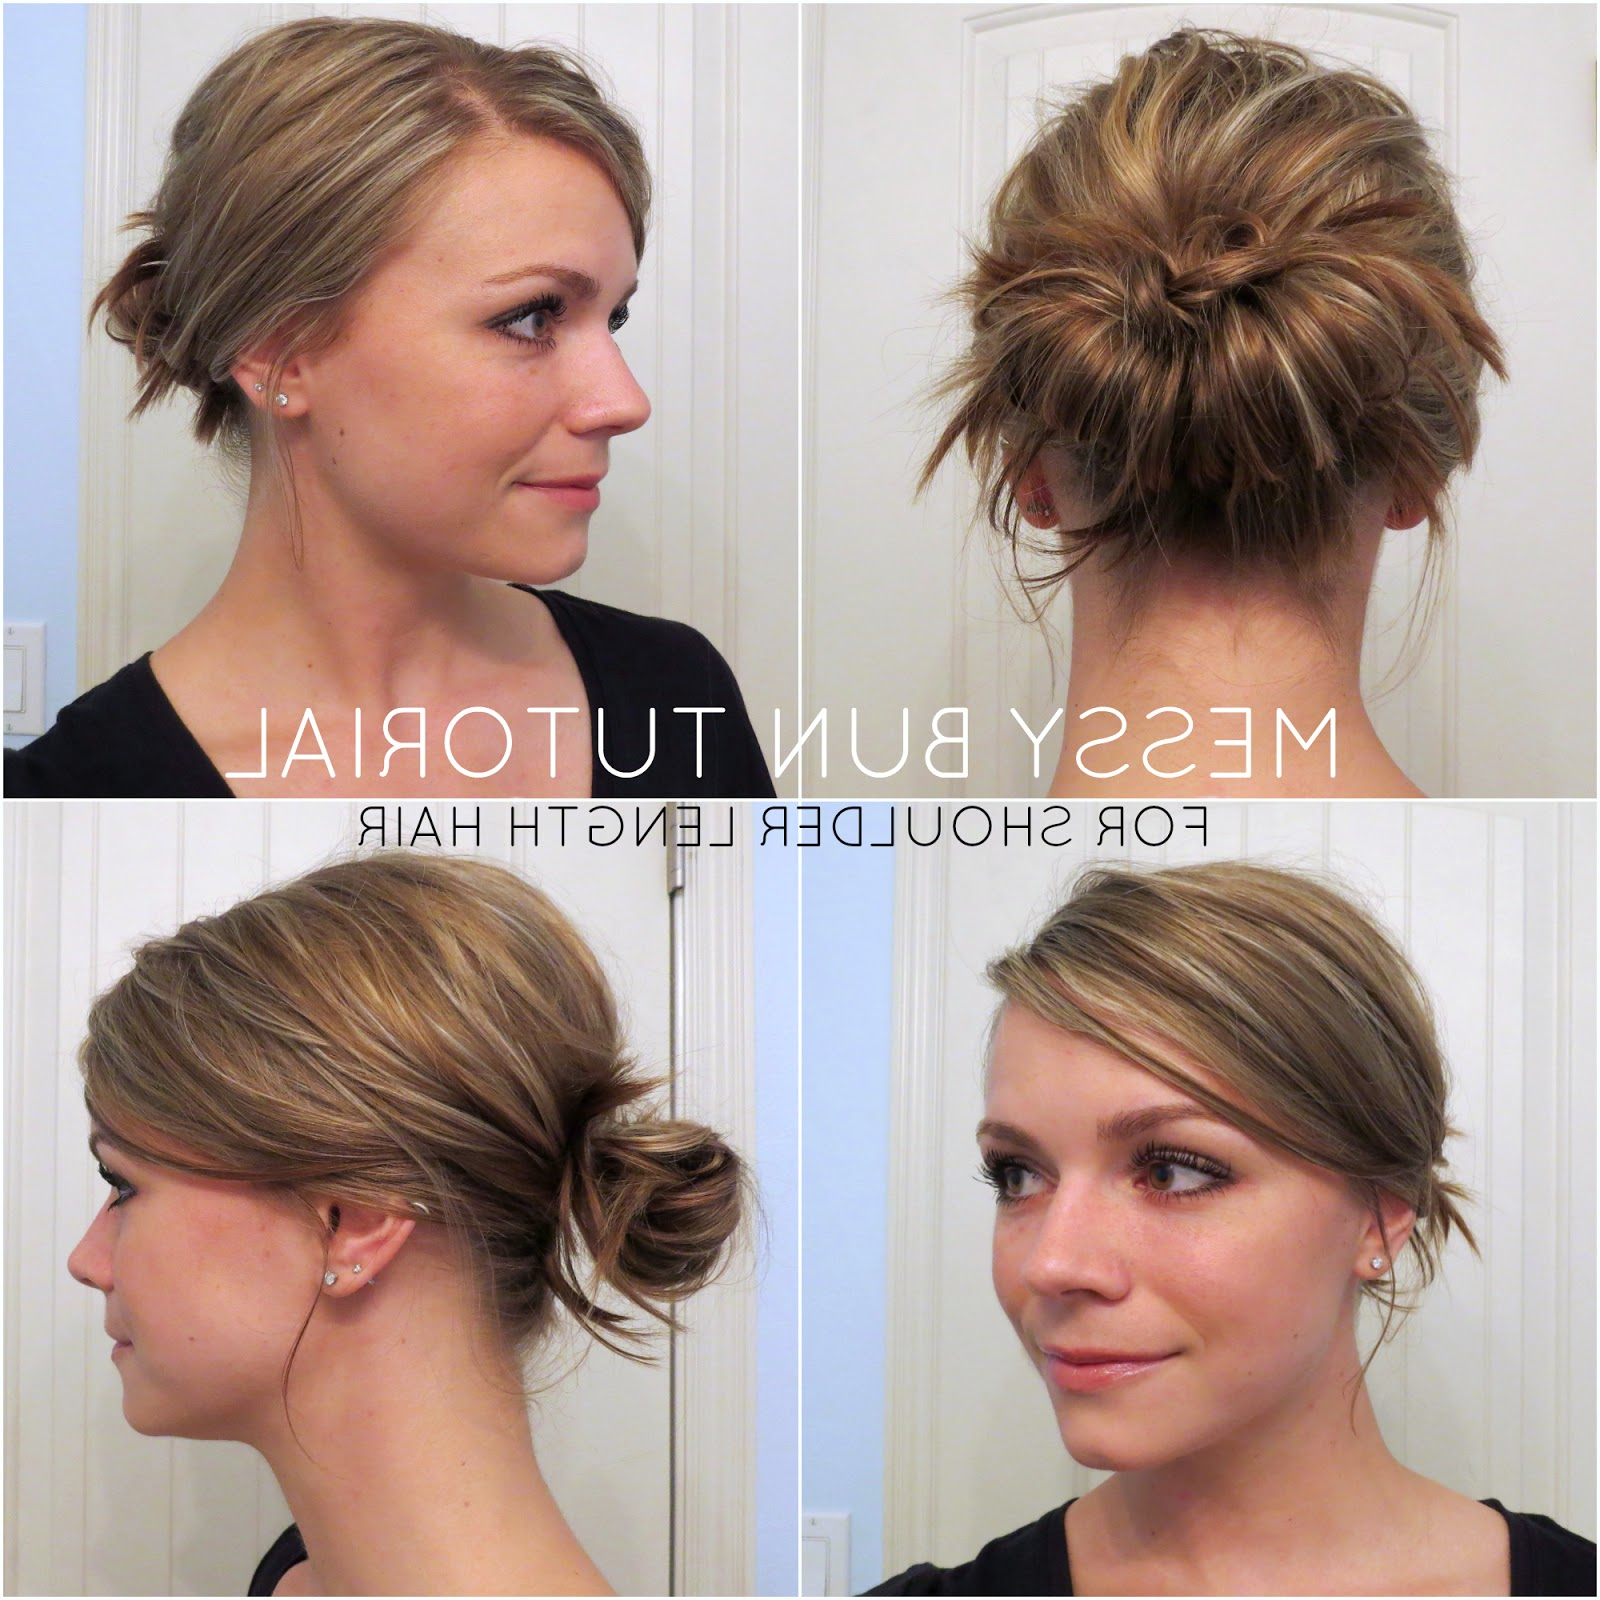 2018 Messy Bun Wedding Hairstyles For Shorter Hair Intended For Bye Bye Beehive │ A Hairstyle Blog: Messy Bun For Shoulder Length Hair (View 14 of 20)